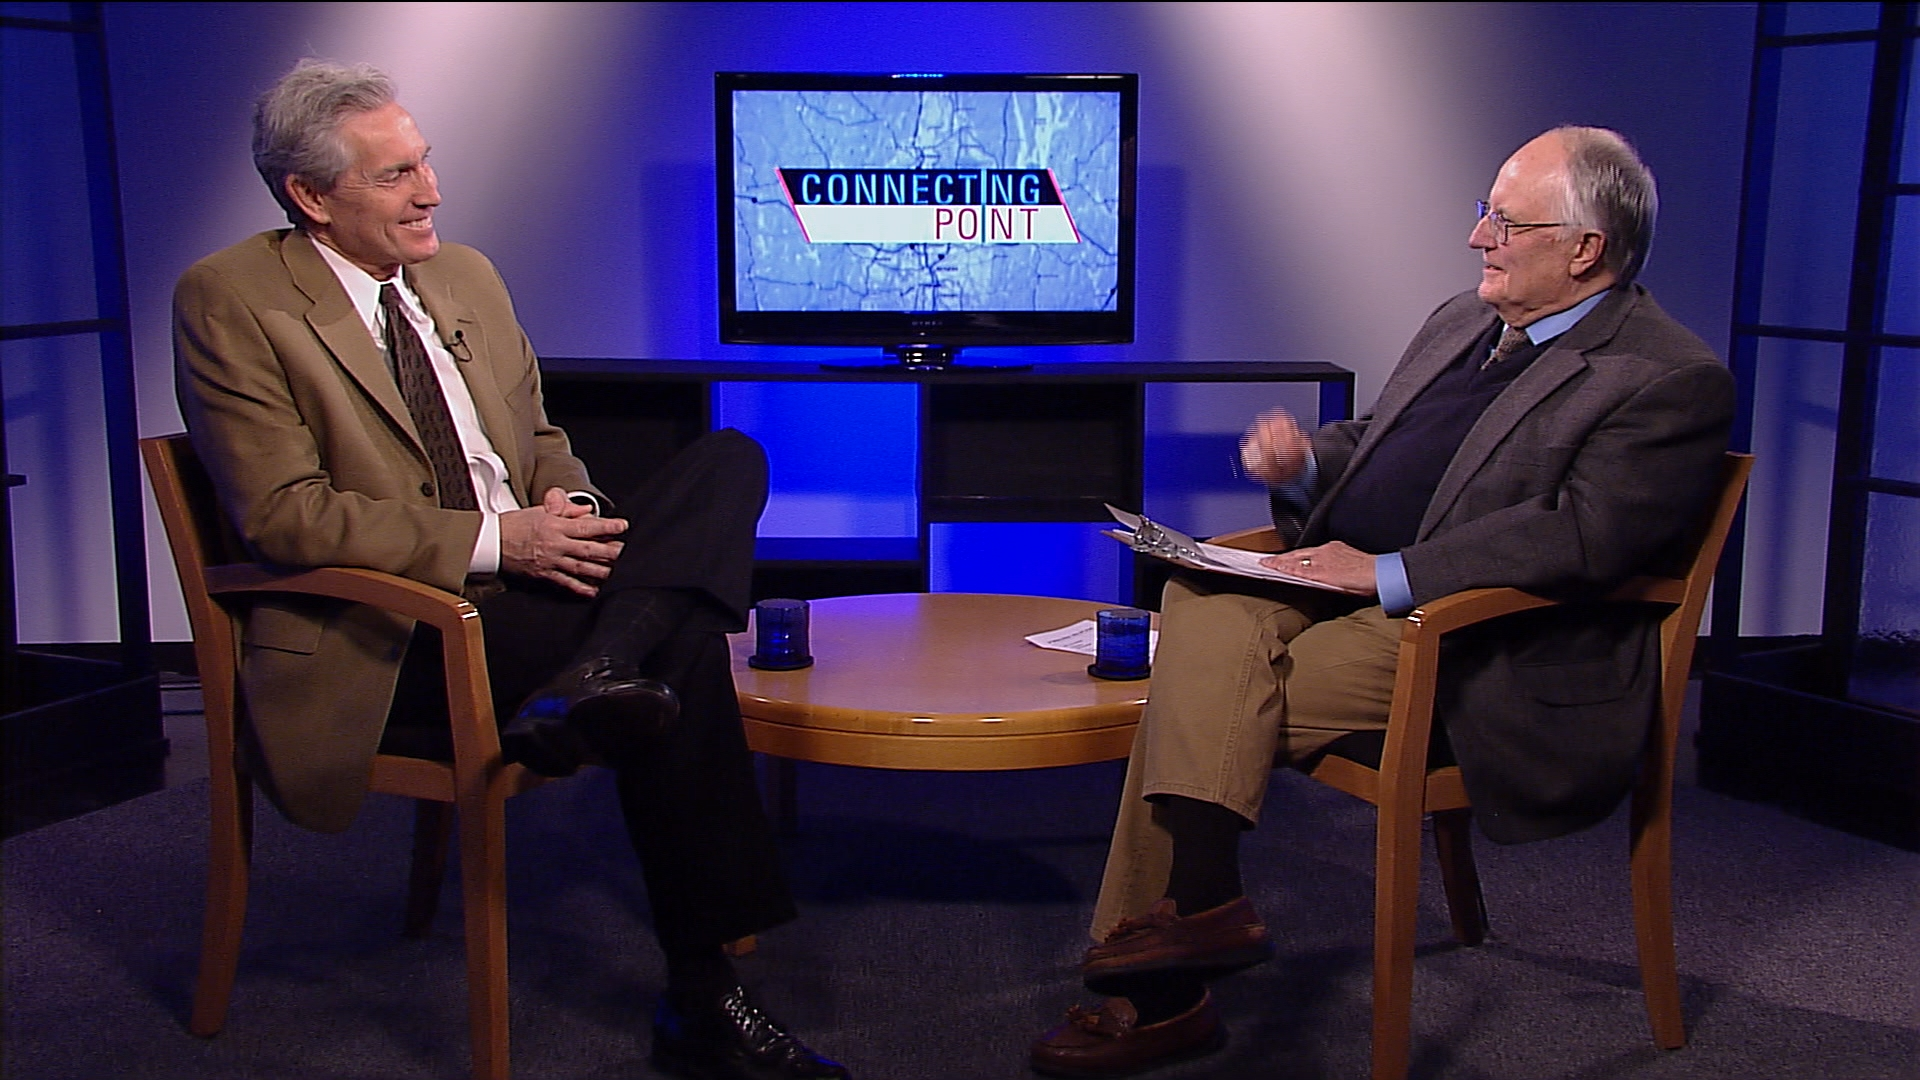 Former political consultant Paul Robbins discusses the importance of the 100 Day mark and the standing of President Trump's First 100 Days in office.